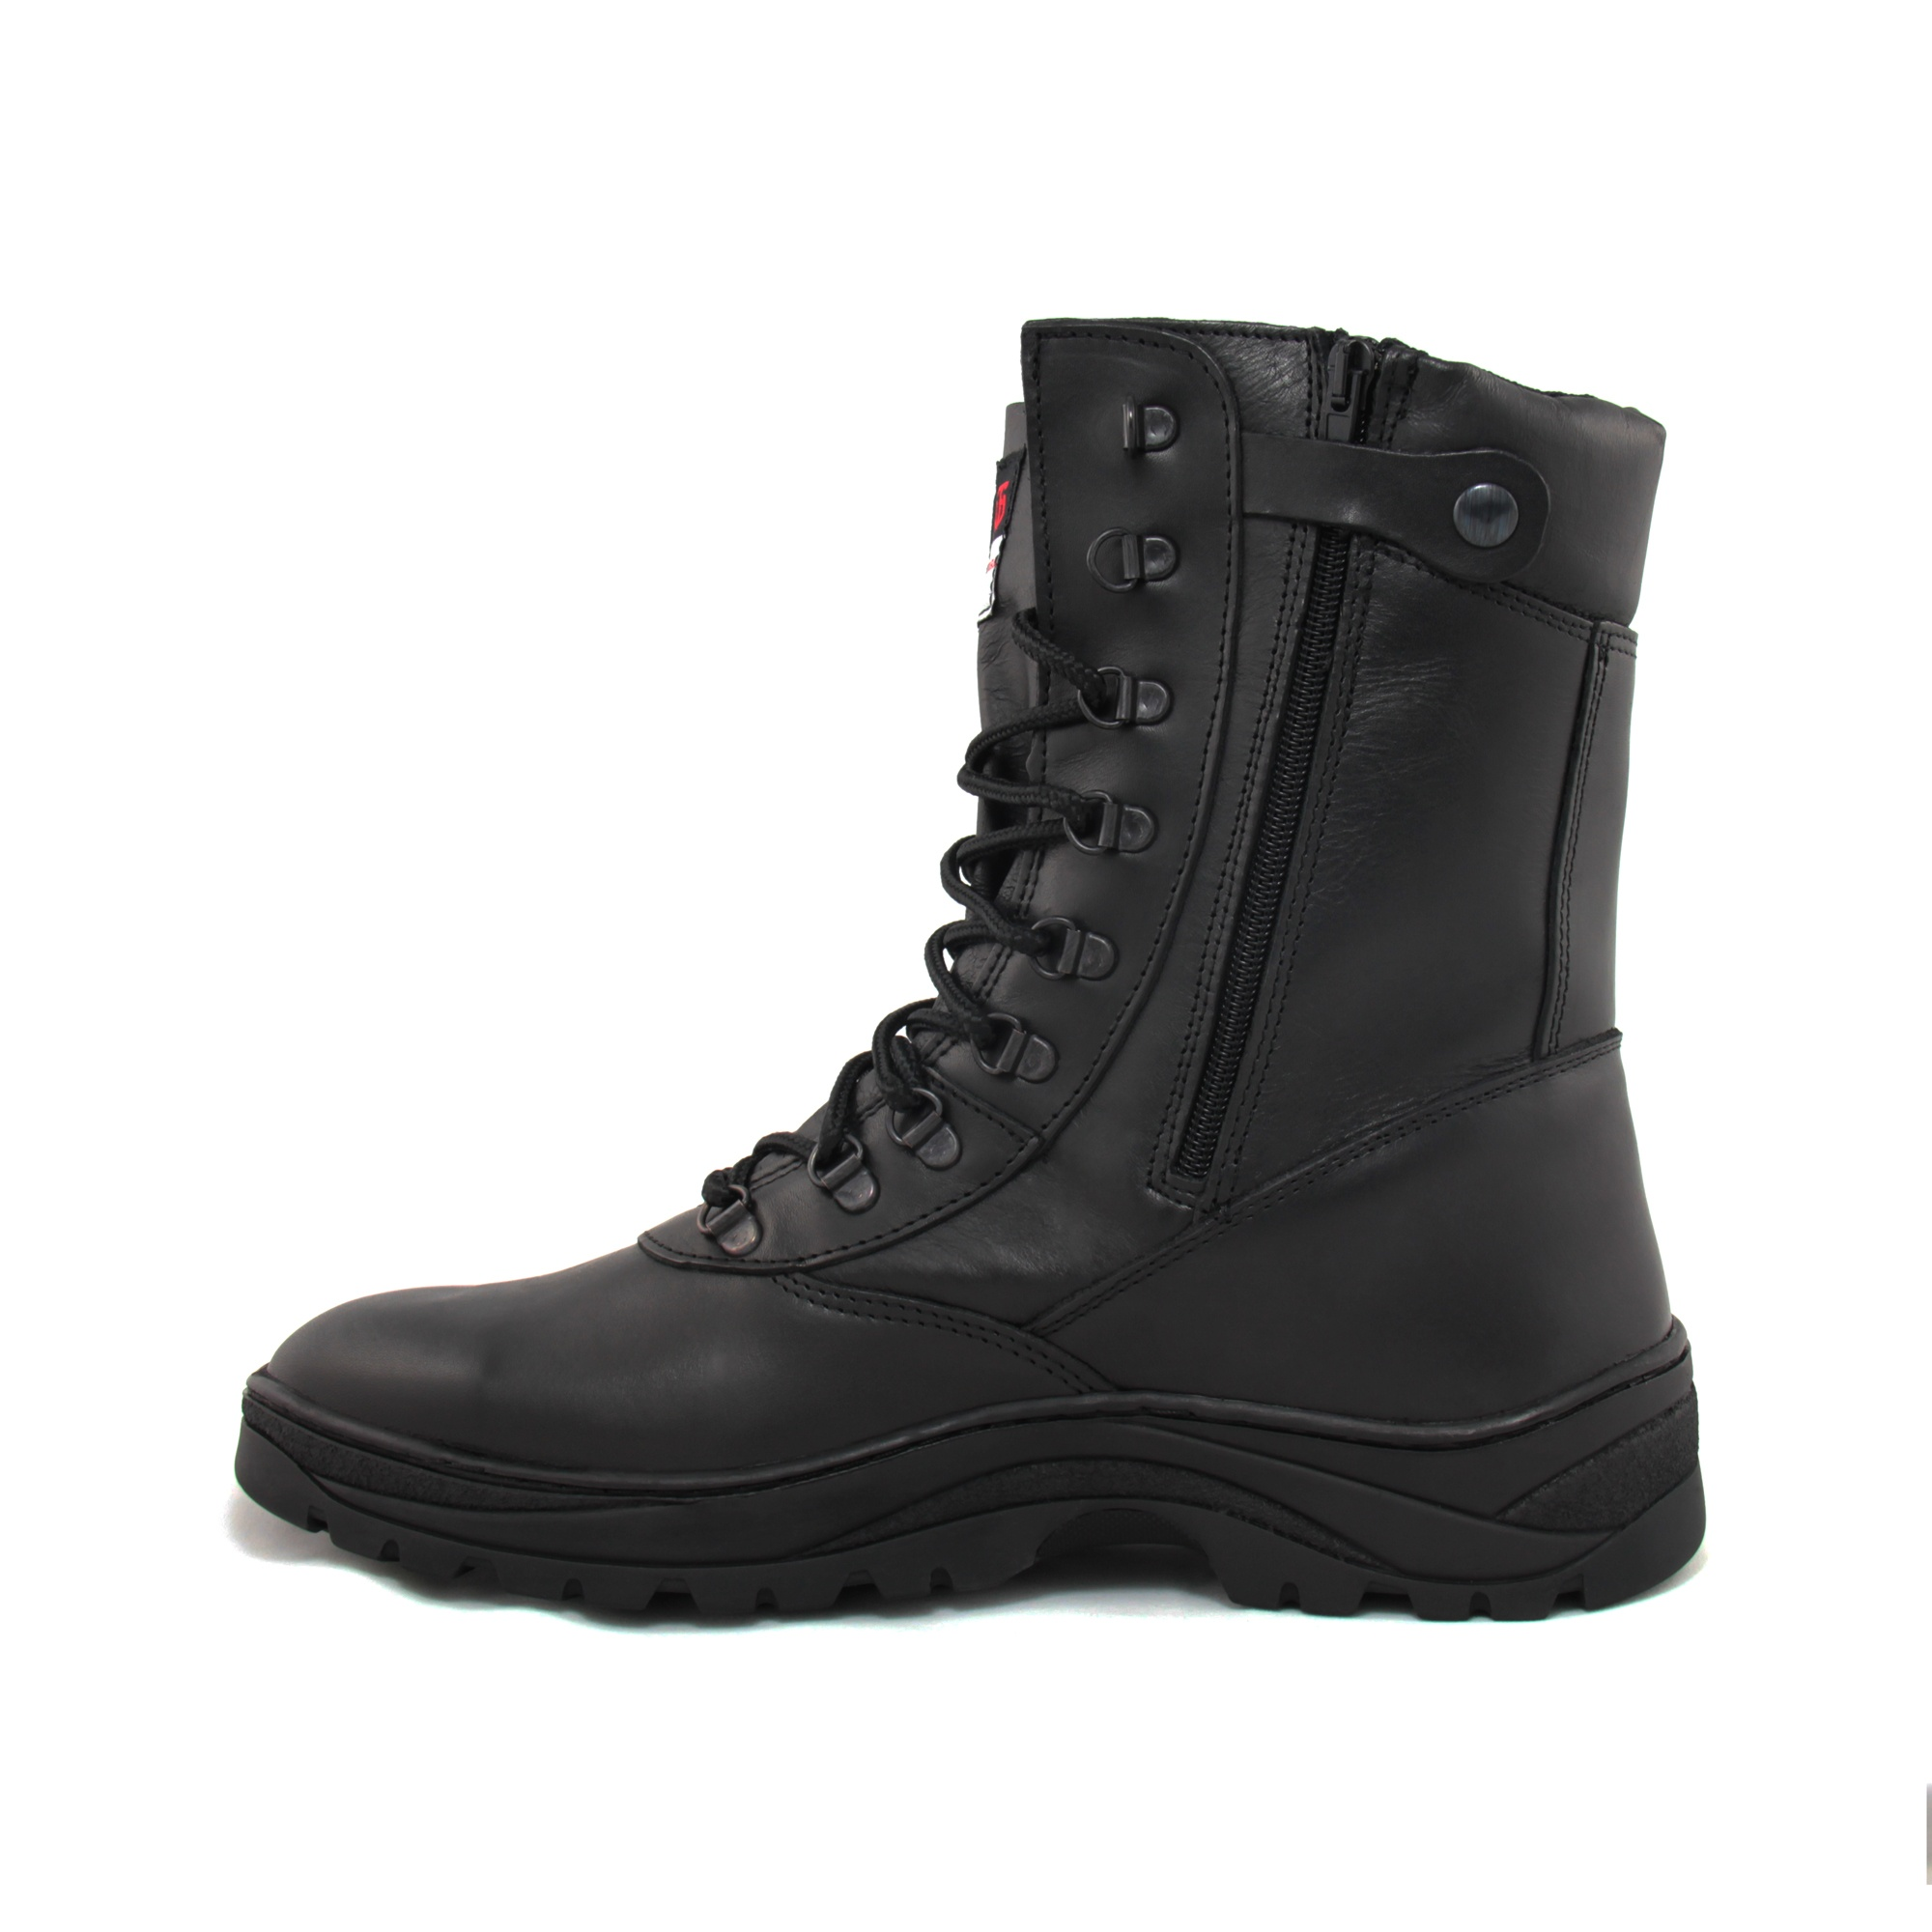 Novidade Novas Botas Tf Tactical I Tf Tactical II